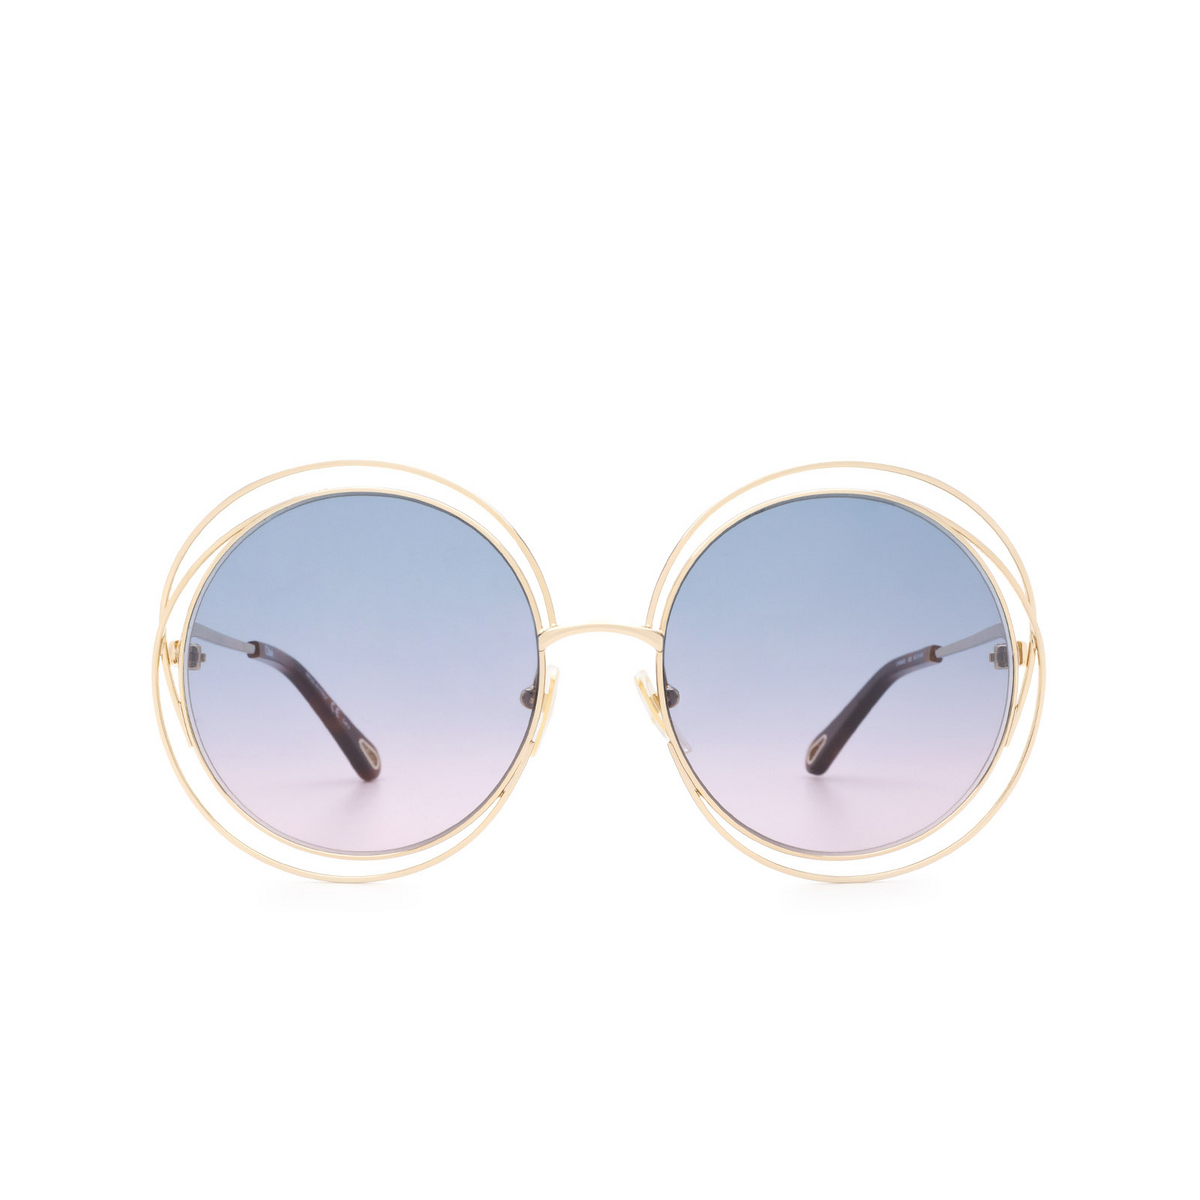 Chloé® Round Sunglasses: CH0045S color Gold 006 - front view.